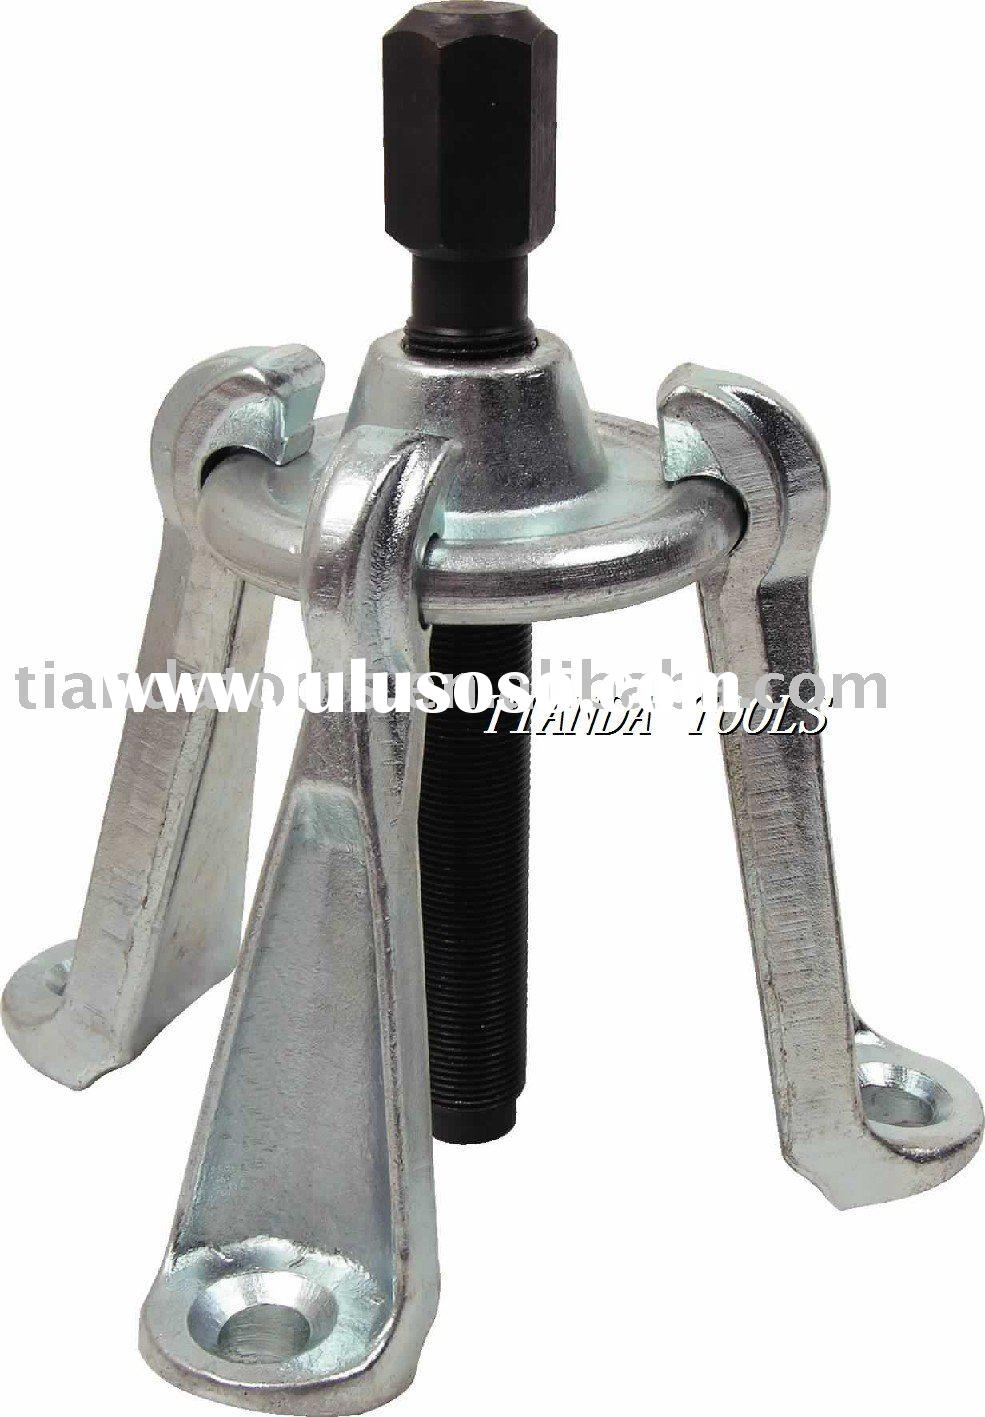 universal hub puller,high quality with low price